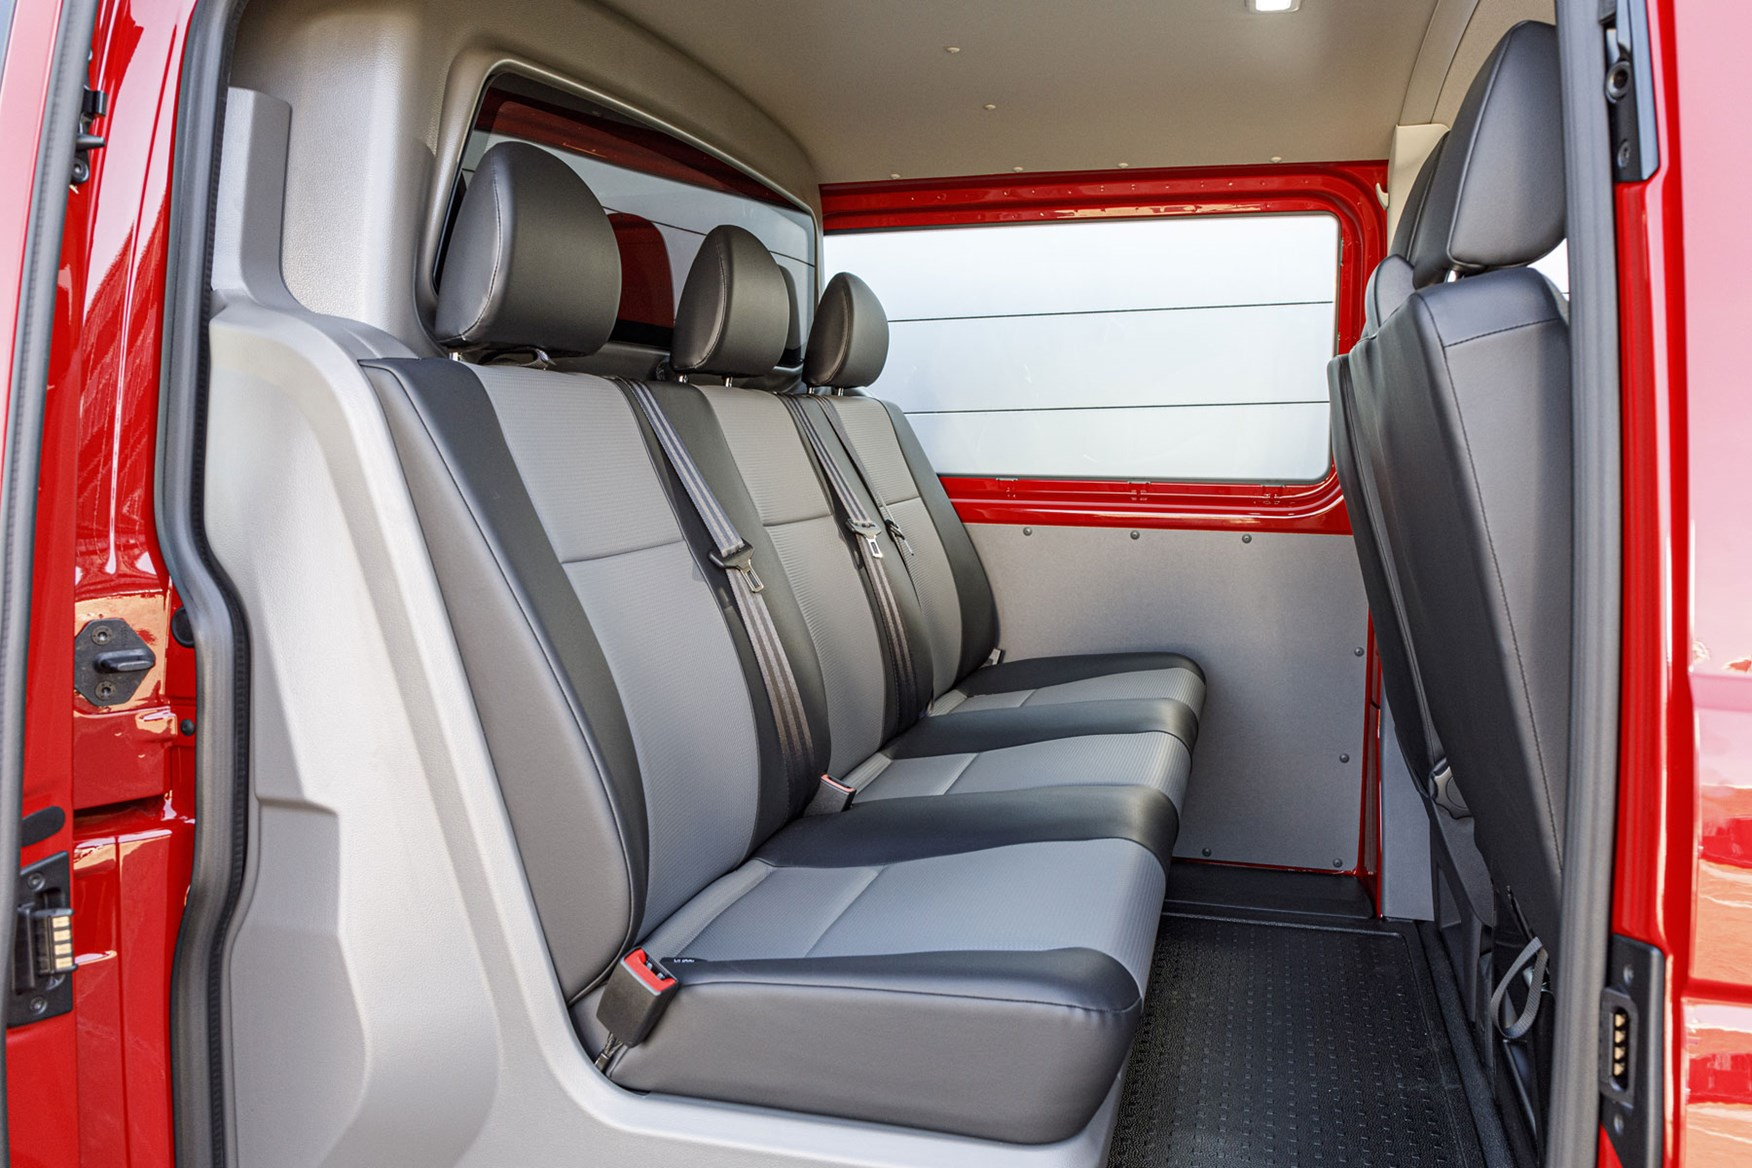 VW Transporter review - T6.1 2019 facelift, kombi rear seats